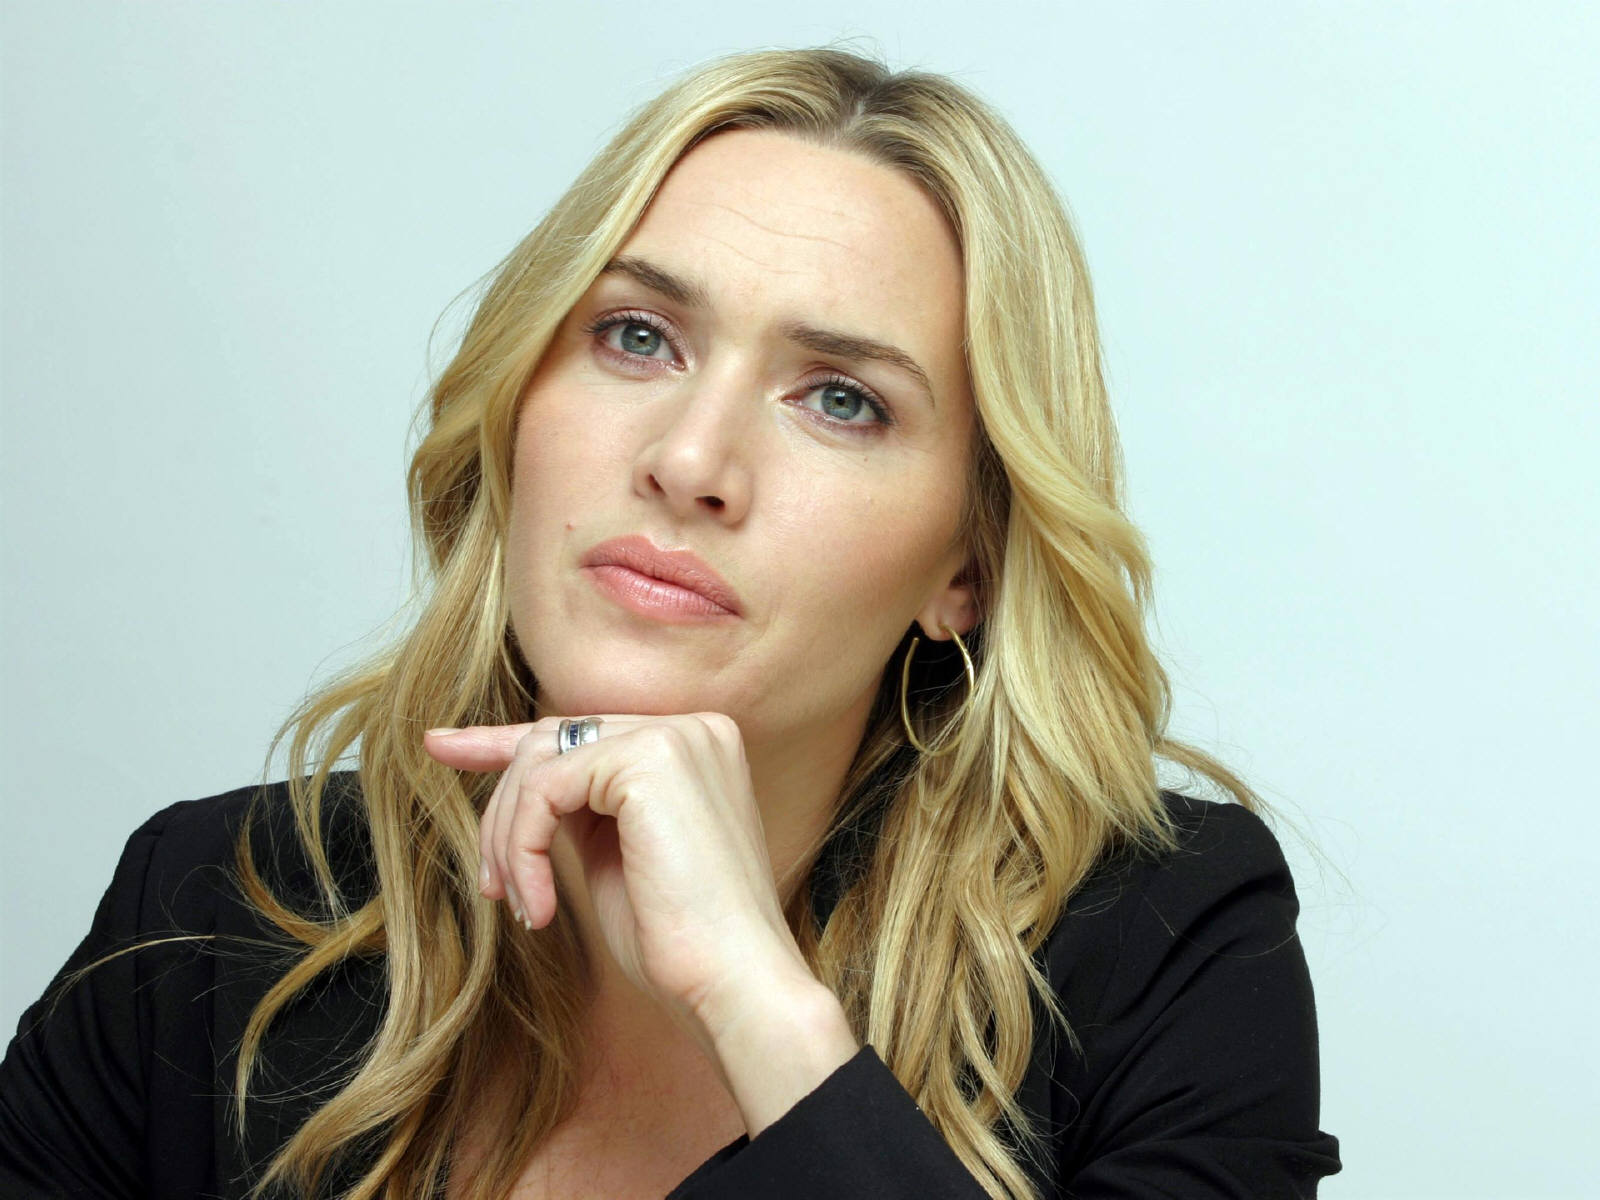 Kate Winslet Wallpapers High Resolution and Quality Download Kate Winslet Official Site